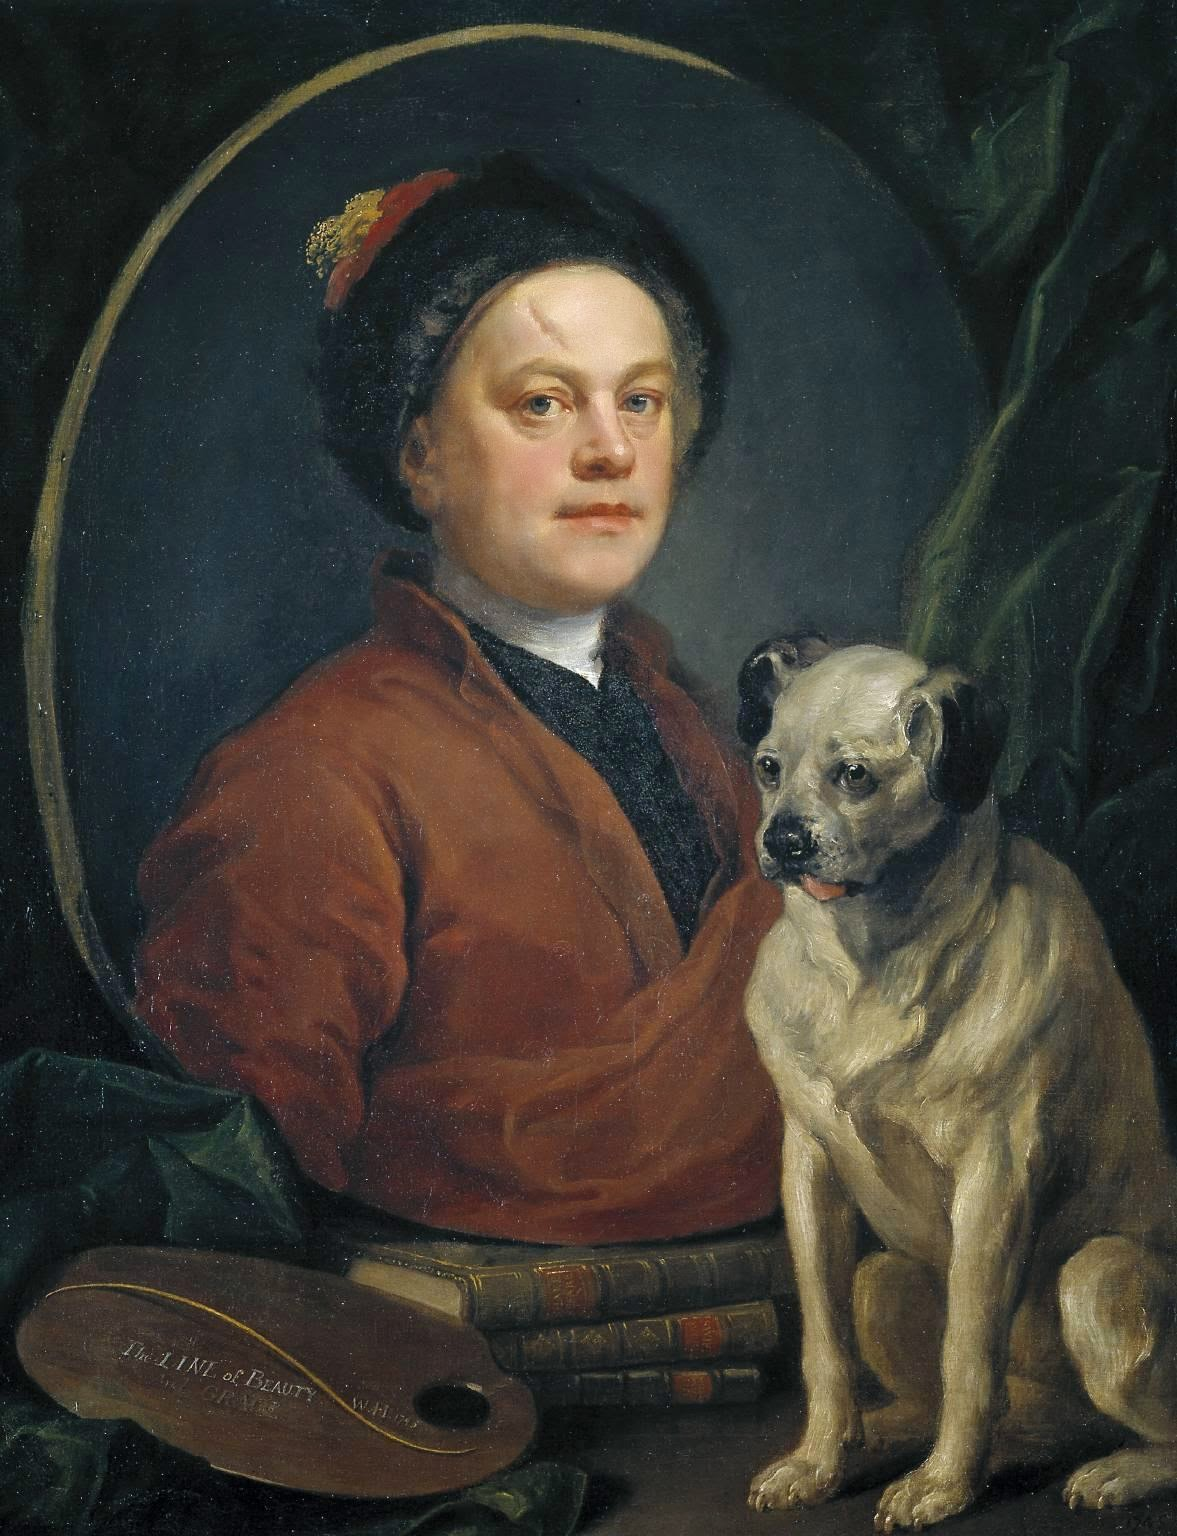 he Painter and His Pug by William Hogarth